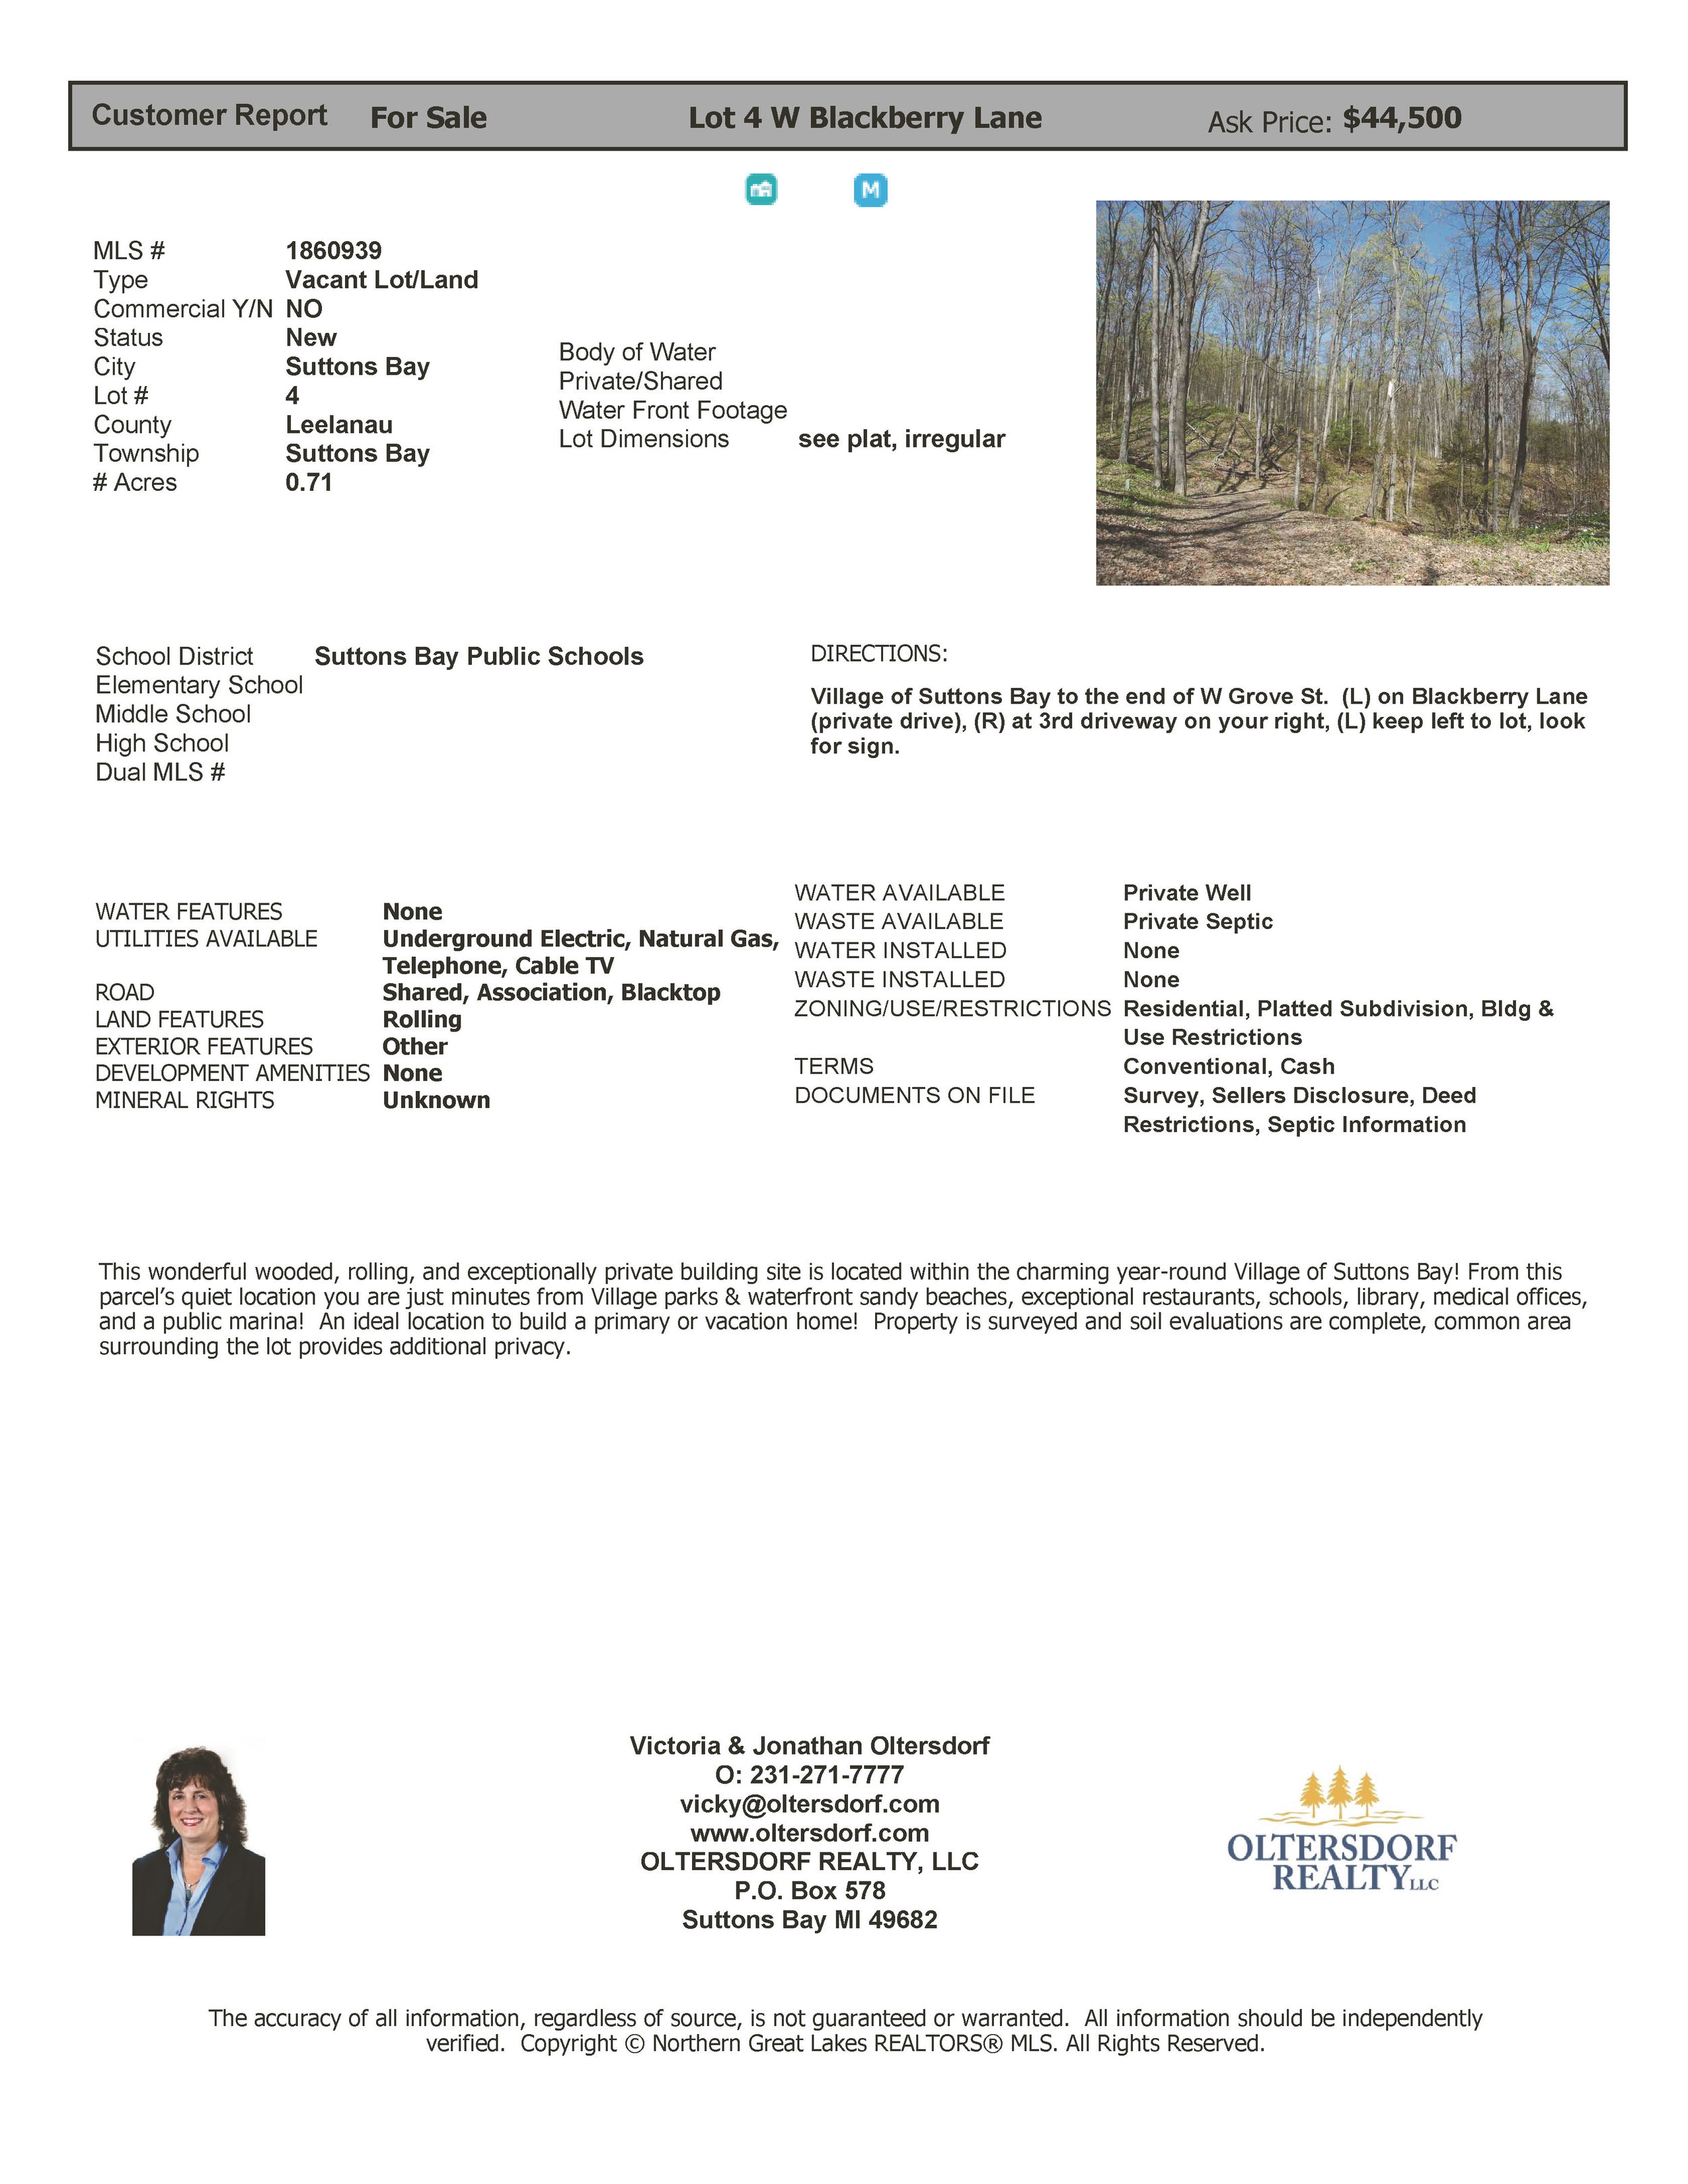 Lot 4 W Blackberry Ln 2019 MLS.jpg